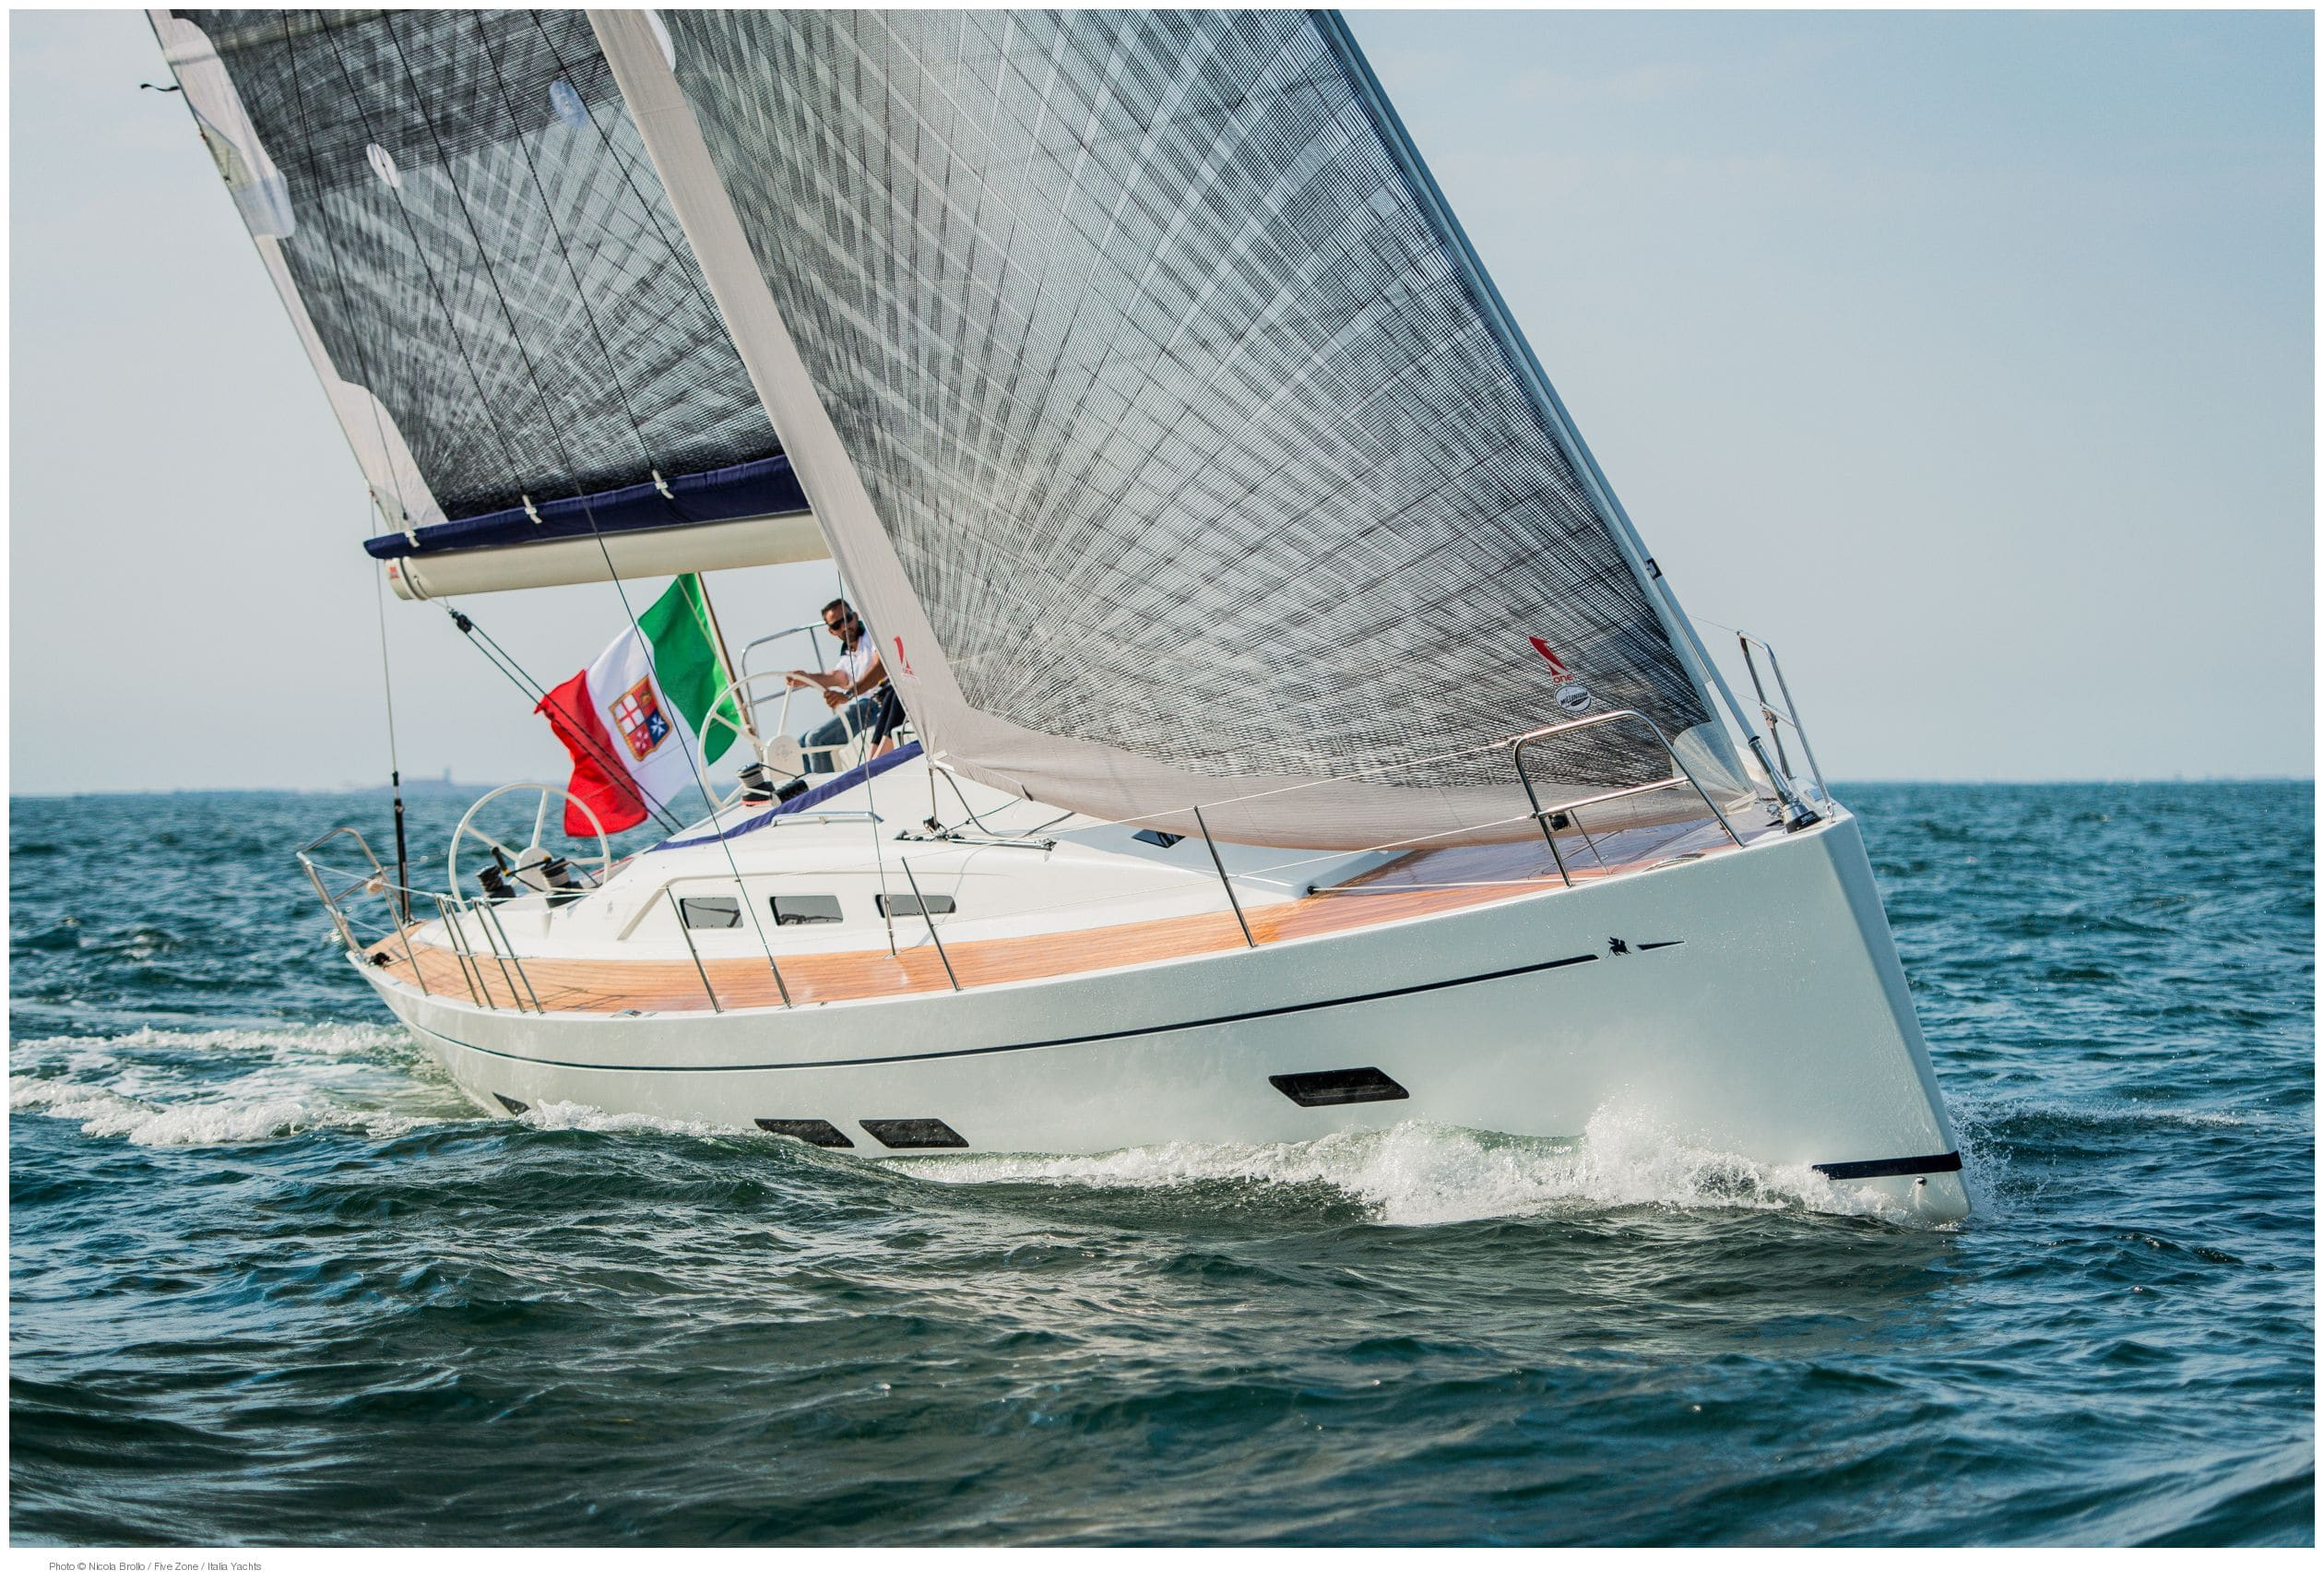 IY 13.98 Sailing Test in Venice Lagoon